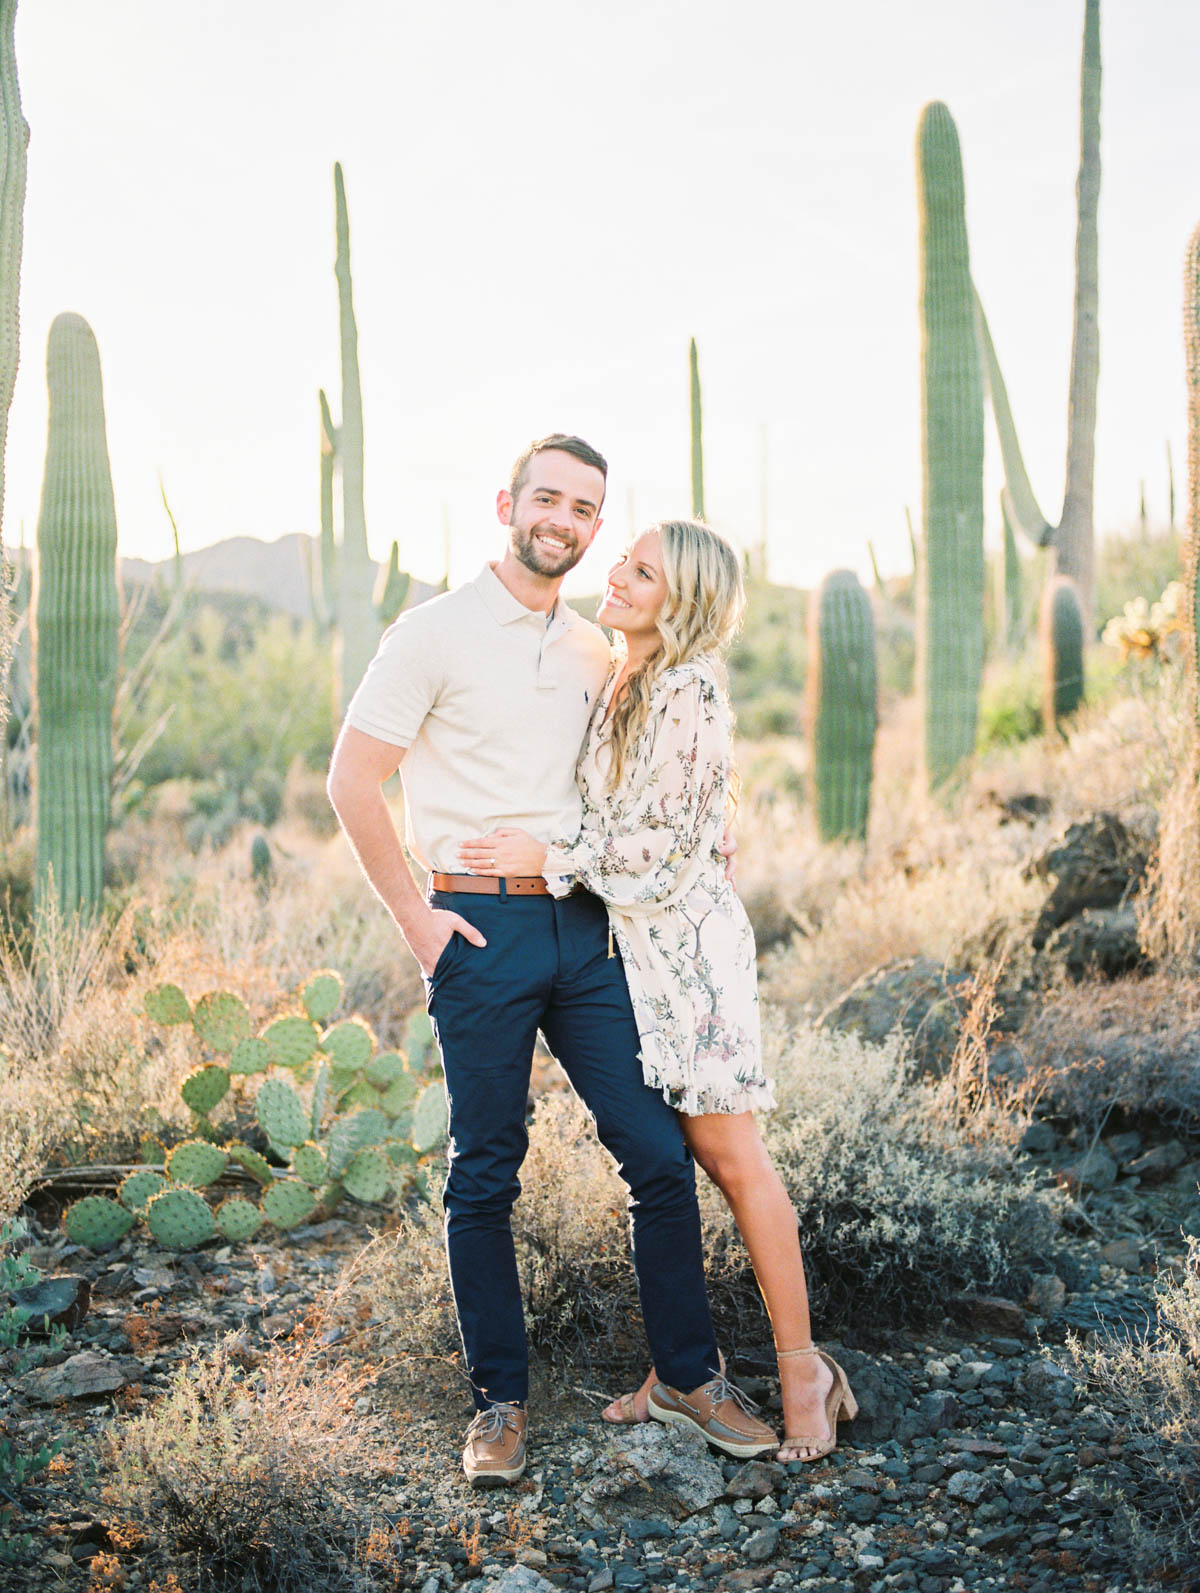 tucson-desert-engagement-session-34.jpg